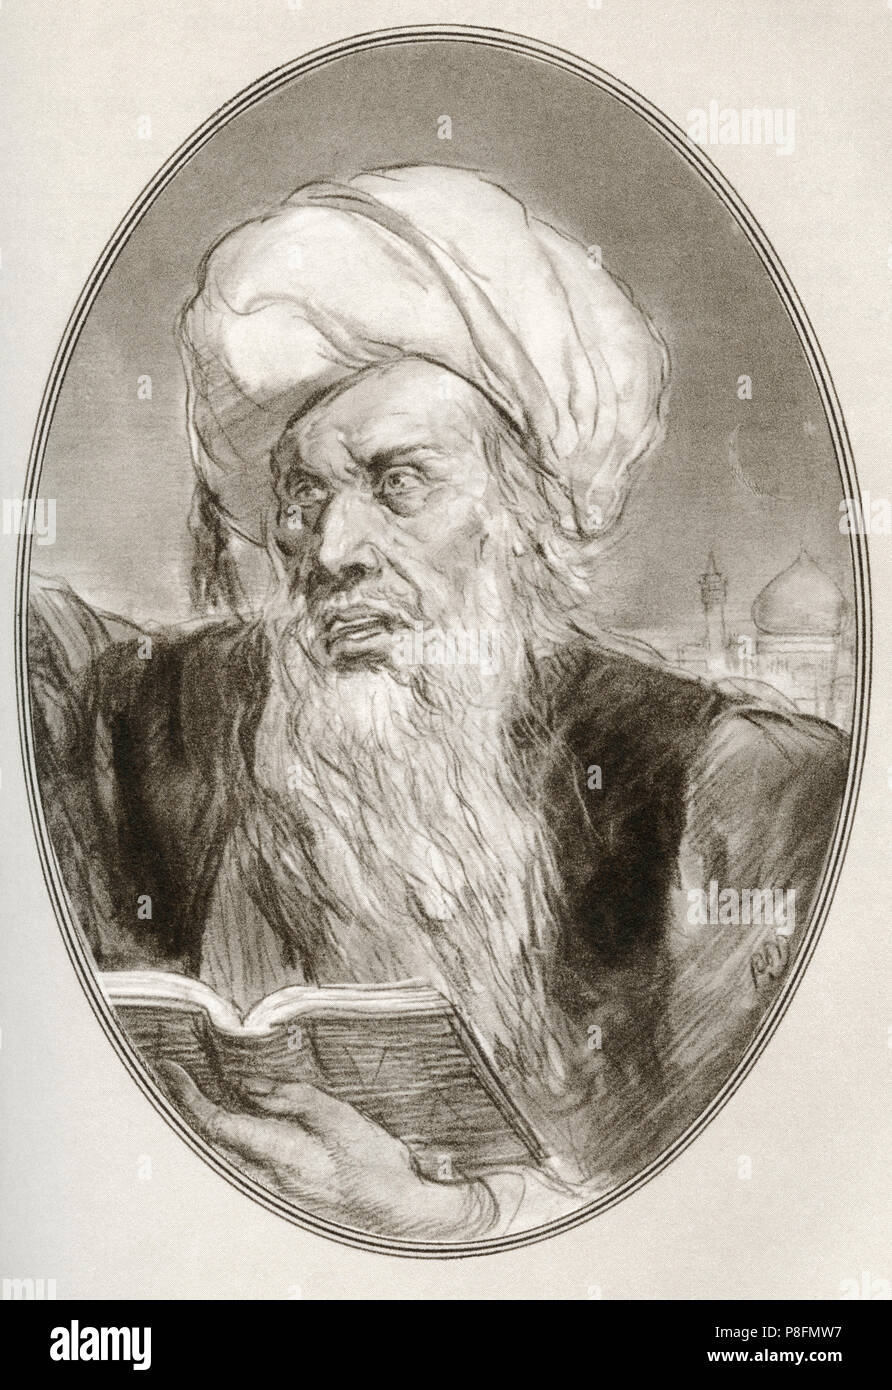 Muhammad, c. 570 –  632 AD.  Founder of Islam.   Illustration by Gordon Ross, American artist and illustrator (1873-1946), from Living Biographies of Religious Leaders. Stock Photo